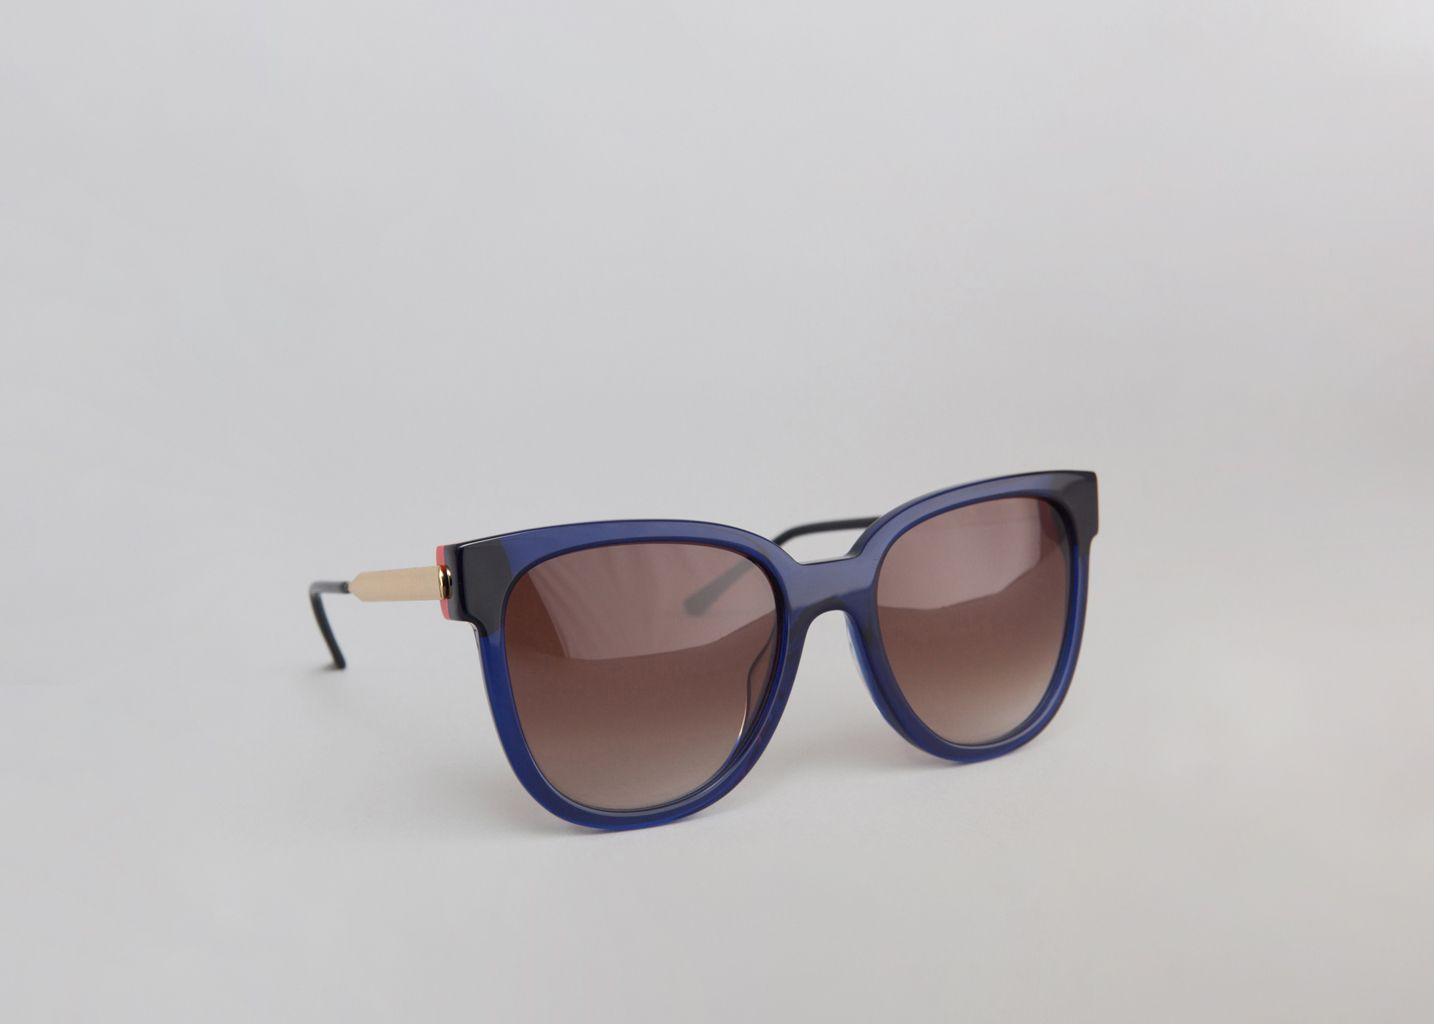 Lunettes Flashy - Thierry Lasry